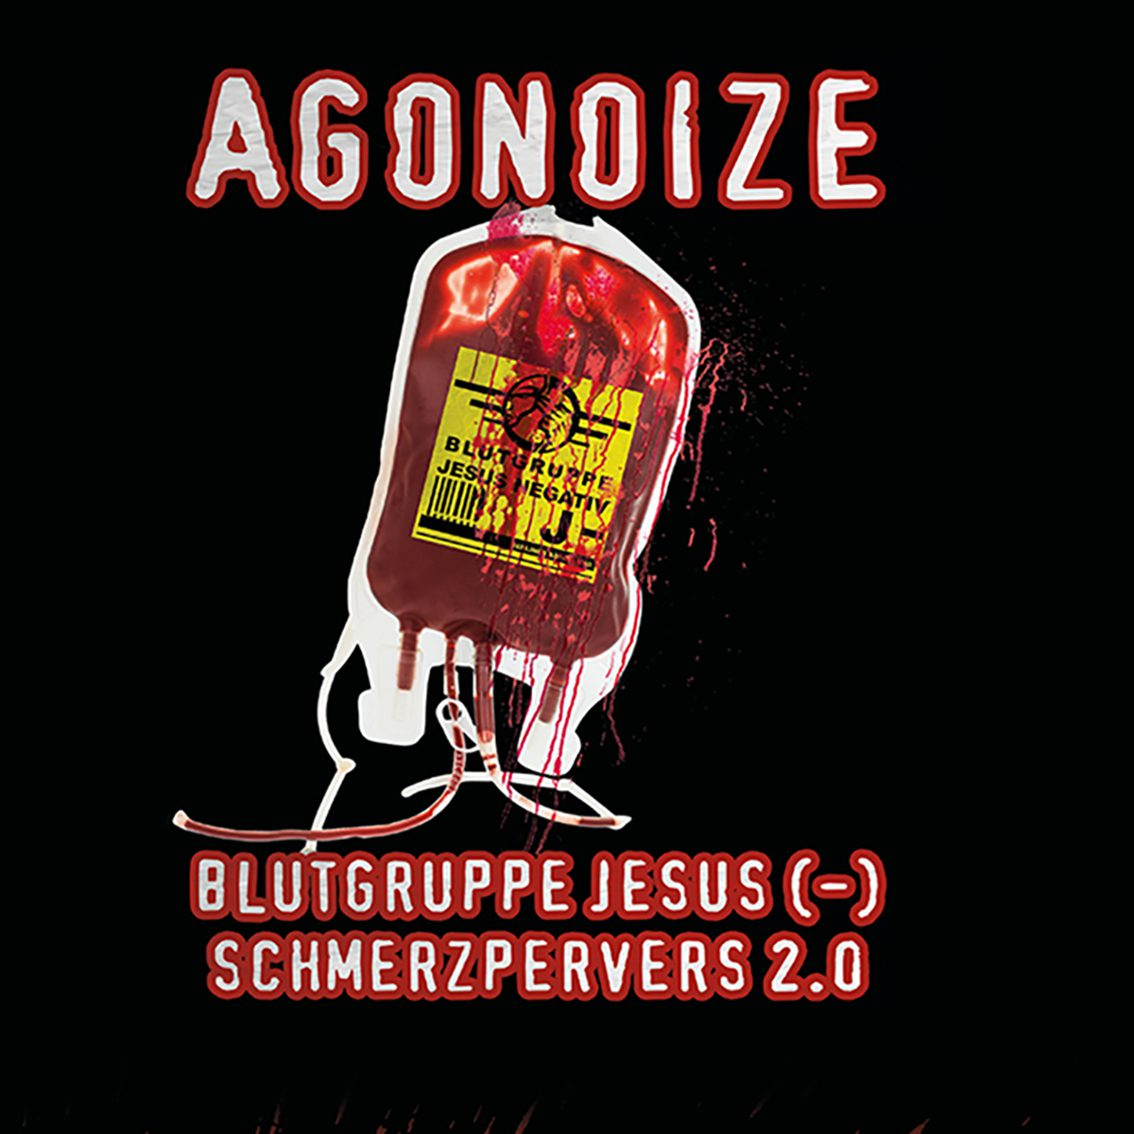 Agonoize returns with 'Blutgruppe Jesus (-) / Schmerzpervers 2.0' EP and video - watch it here